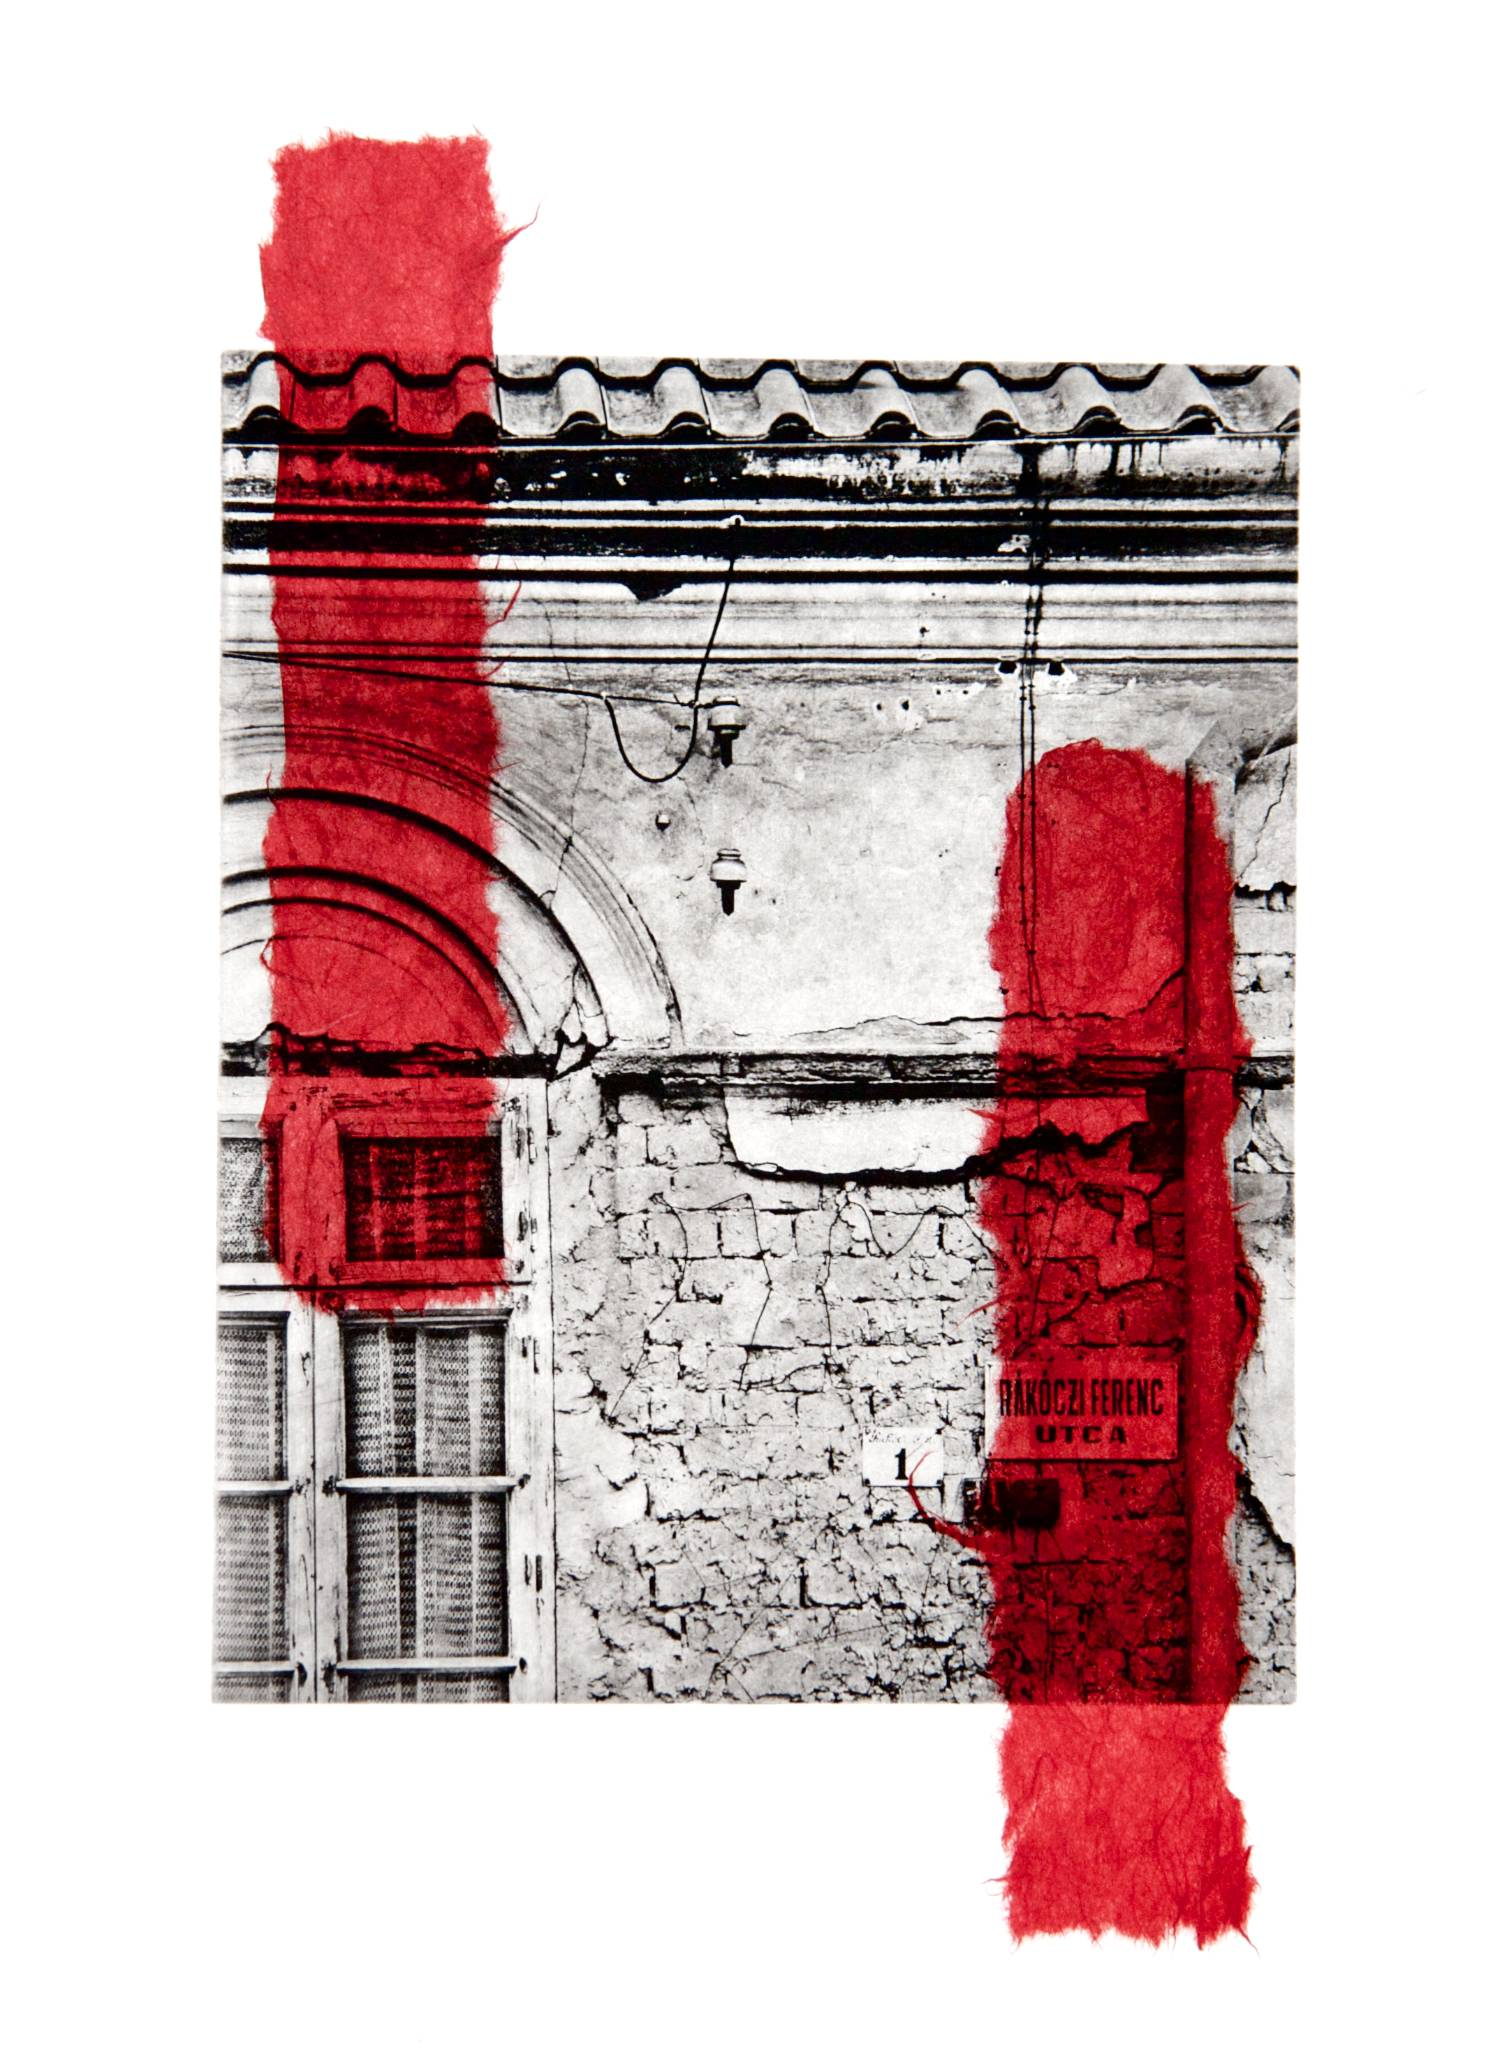 Building Side chine-collé (red)